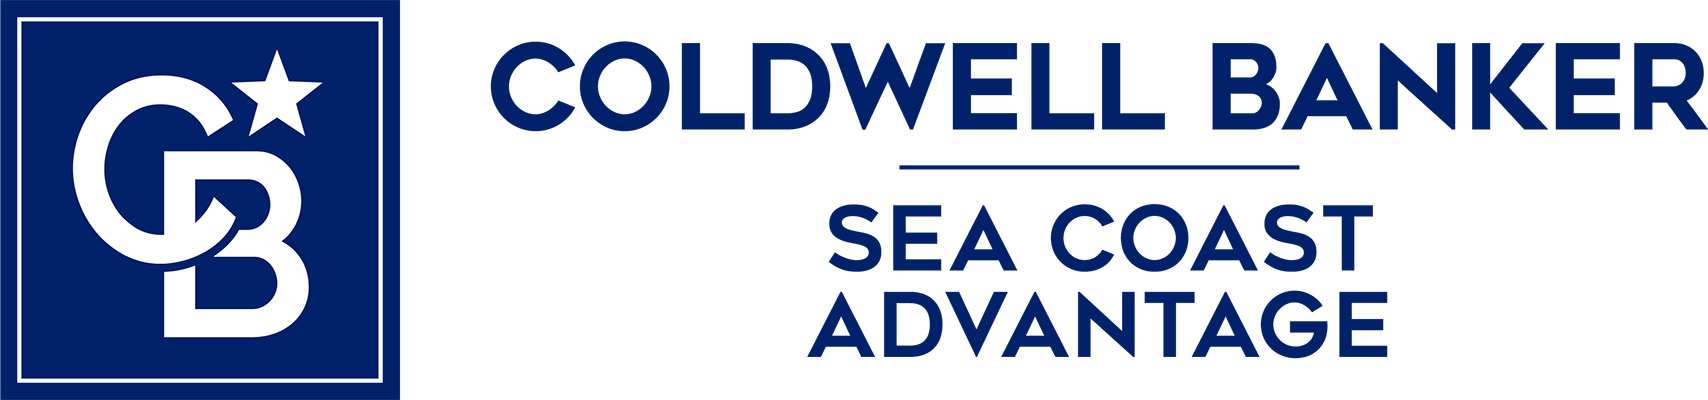 Edie Caudill - Coldwell Banker Sea Coast Advantage Realty